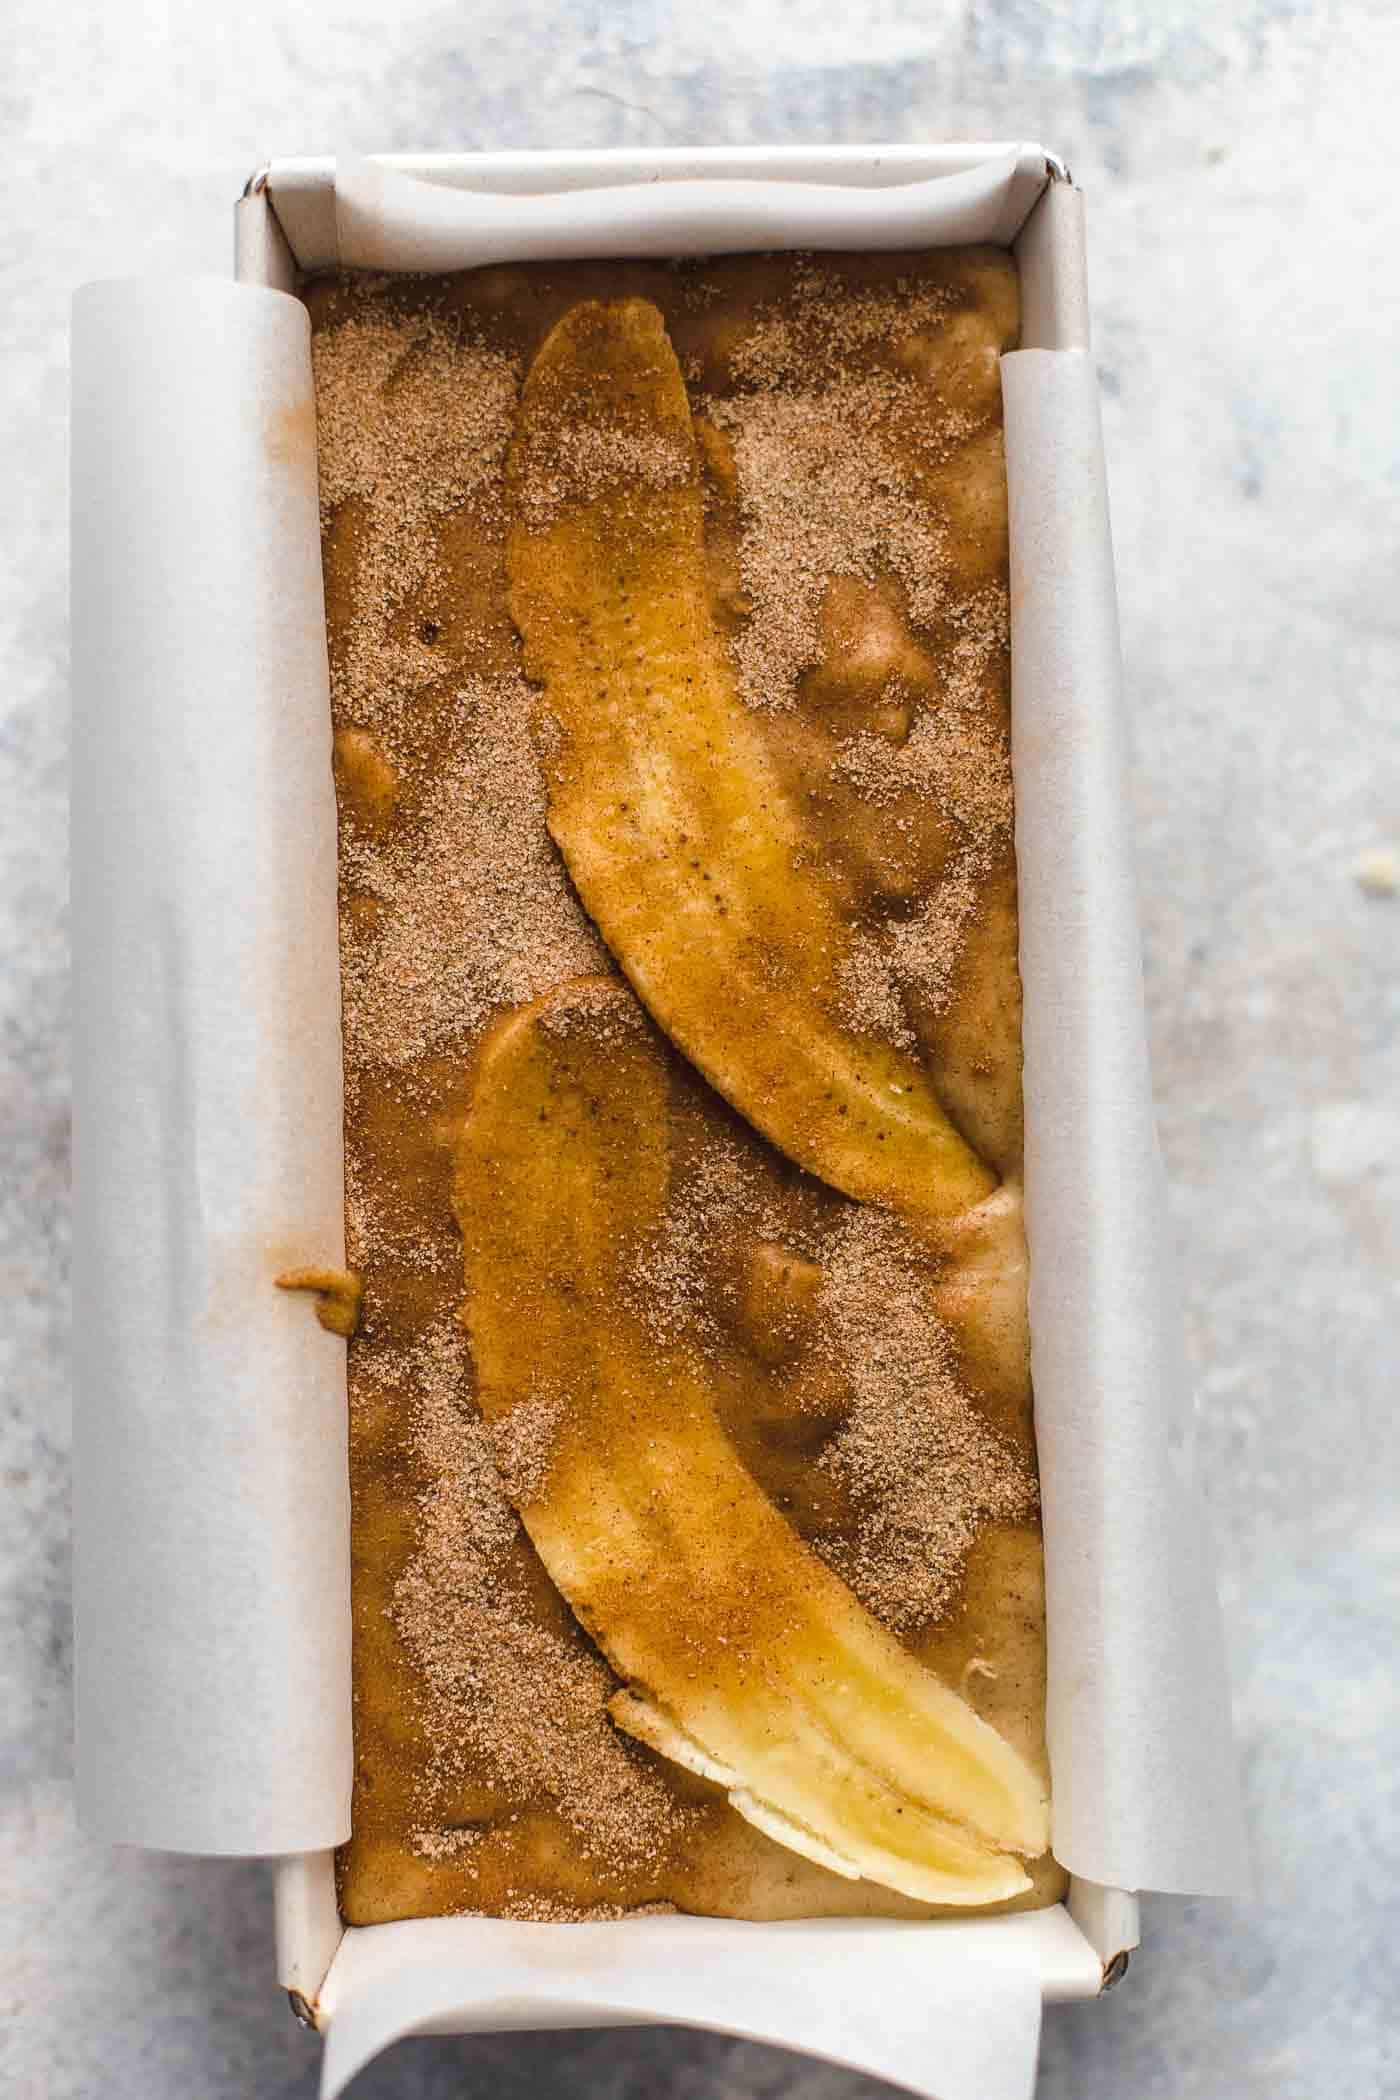 banana bread batter with bananas and sugar on top